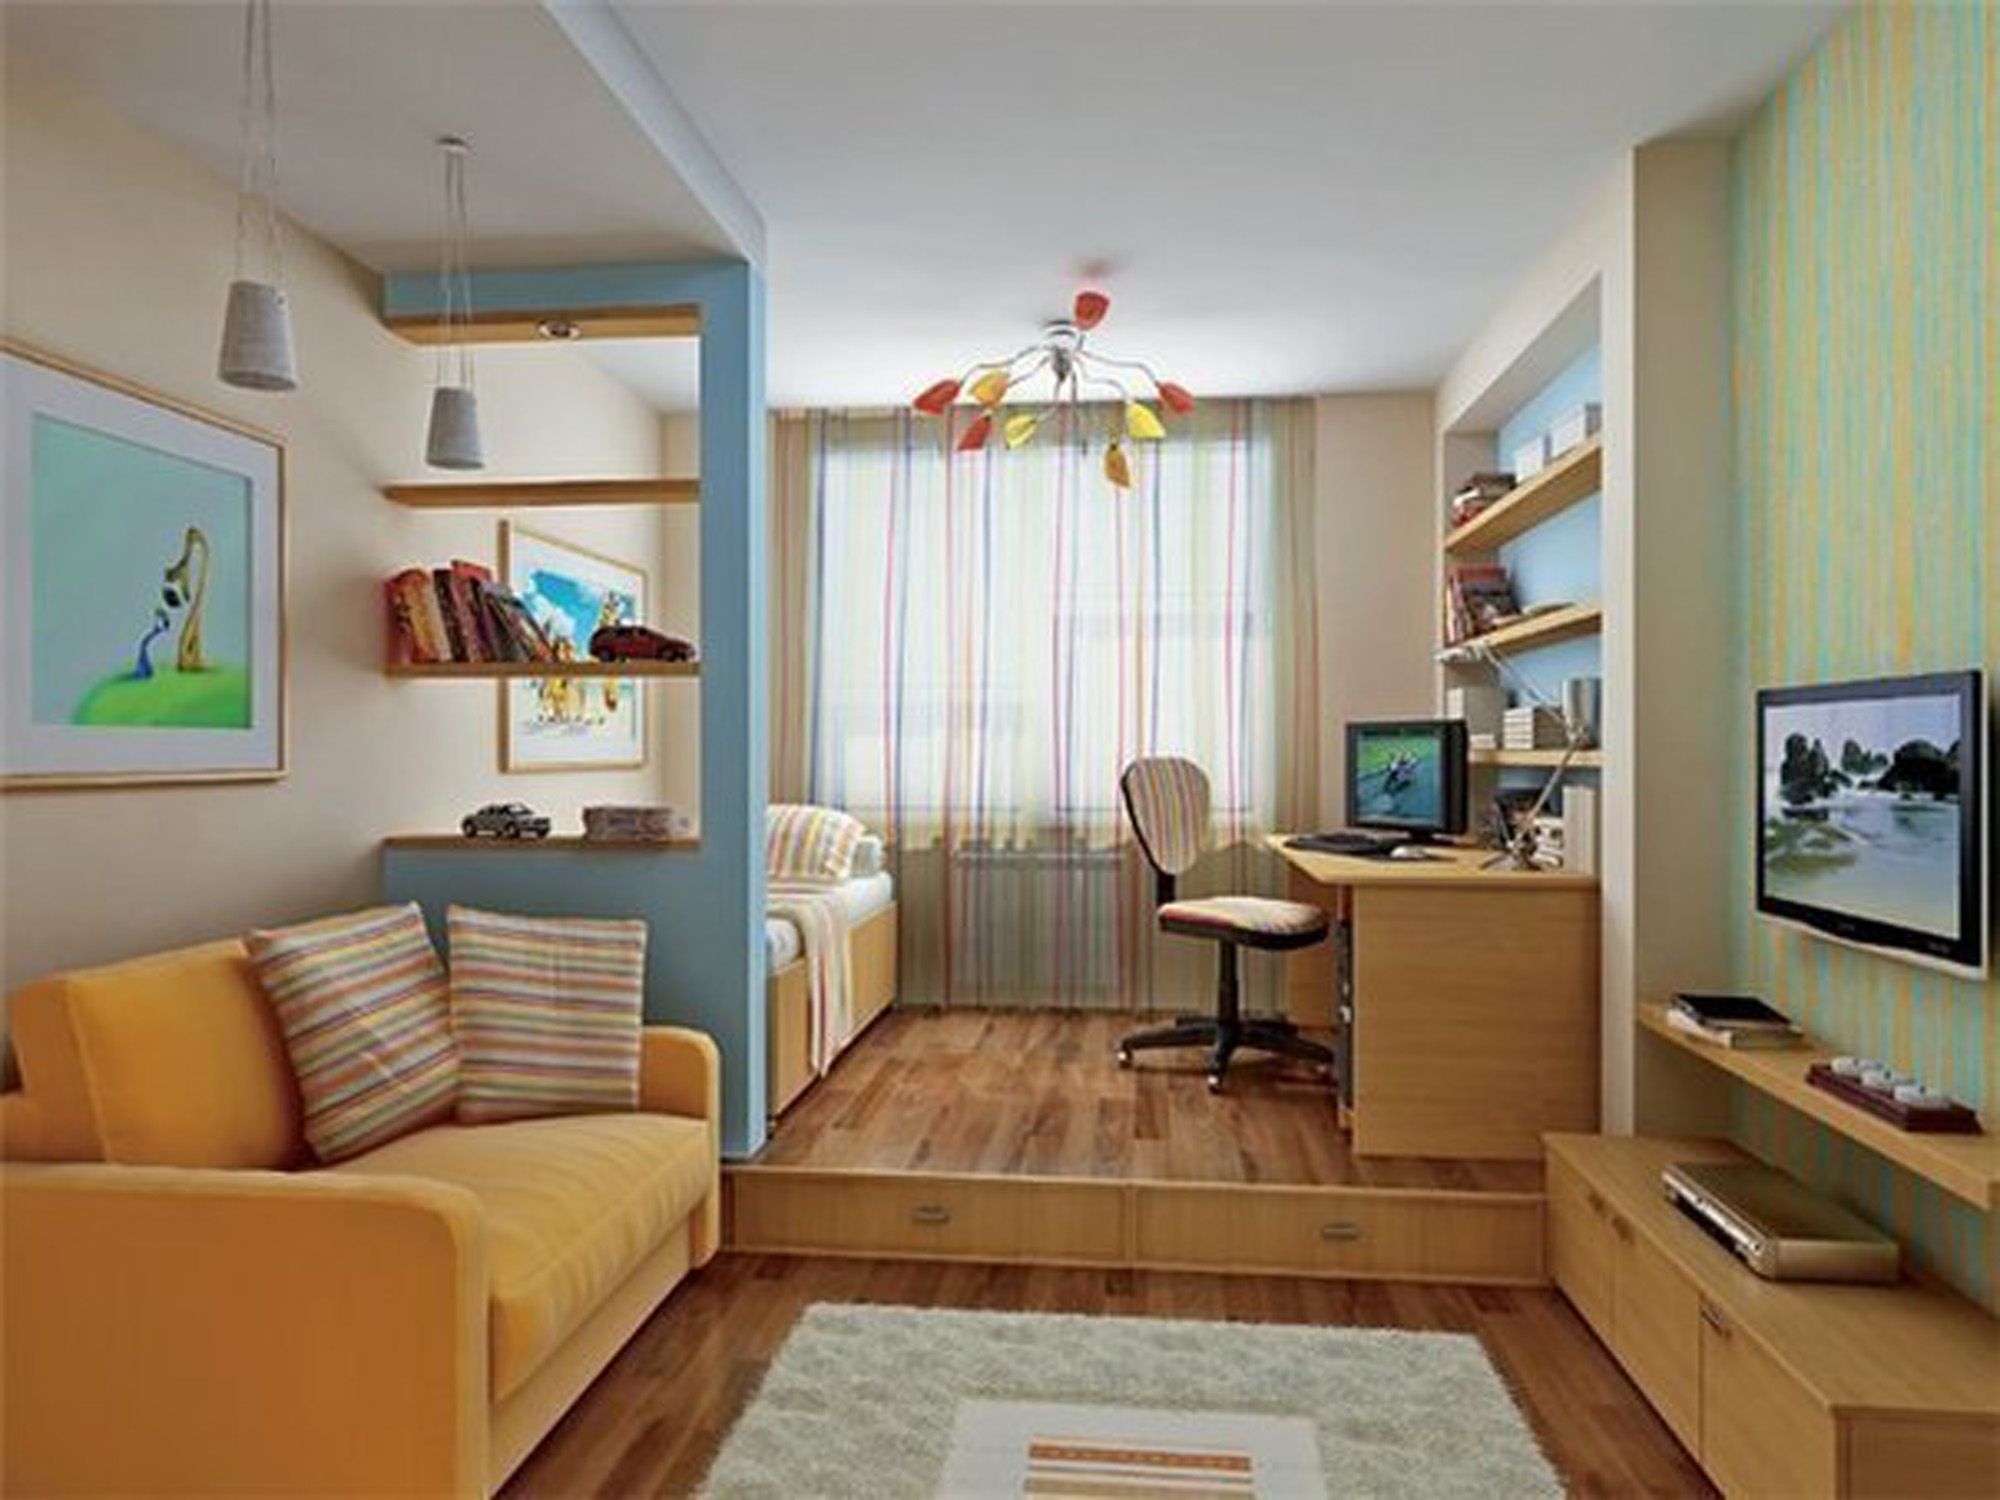 Small Condo Functional Space Ideas - Small Design Ideas